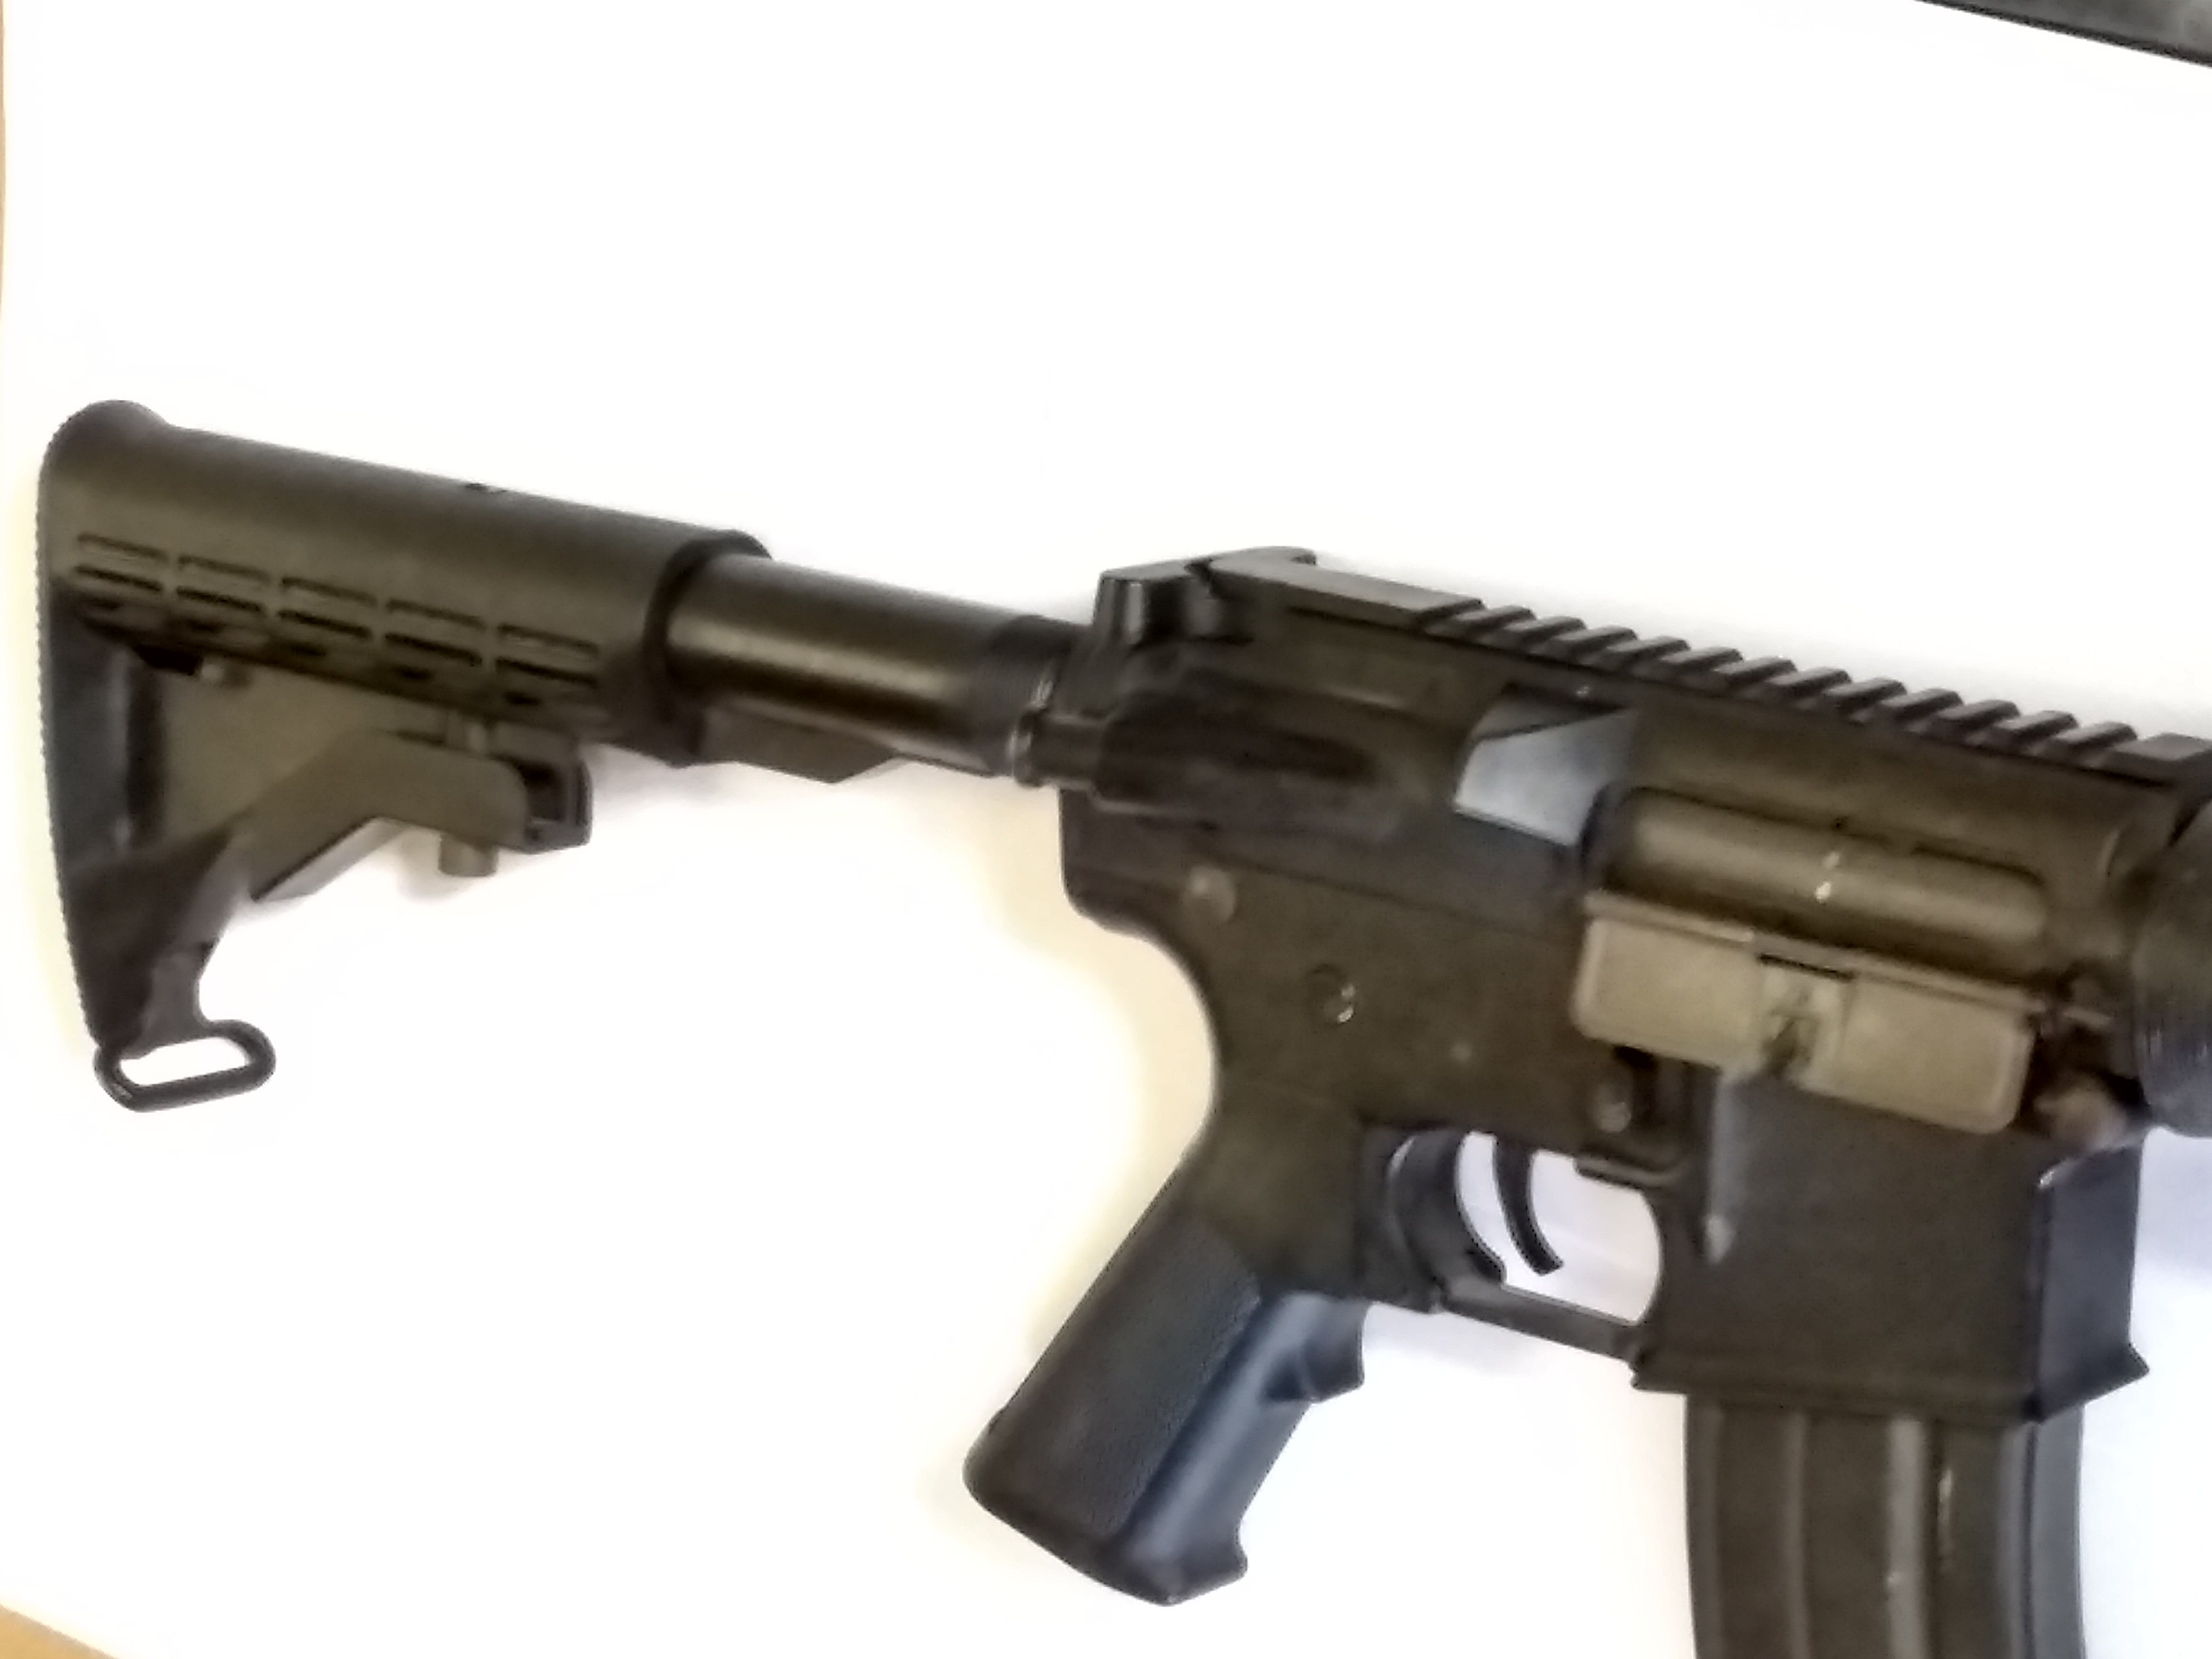 COLT M4A1 METAL GEAR AEG CYBERGUN